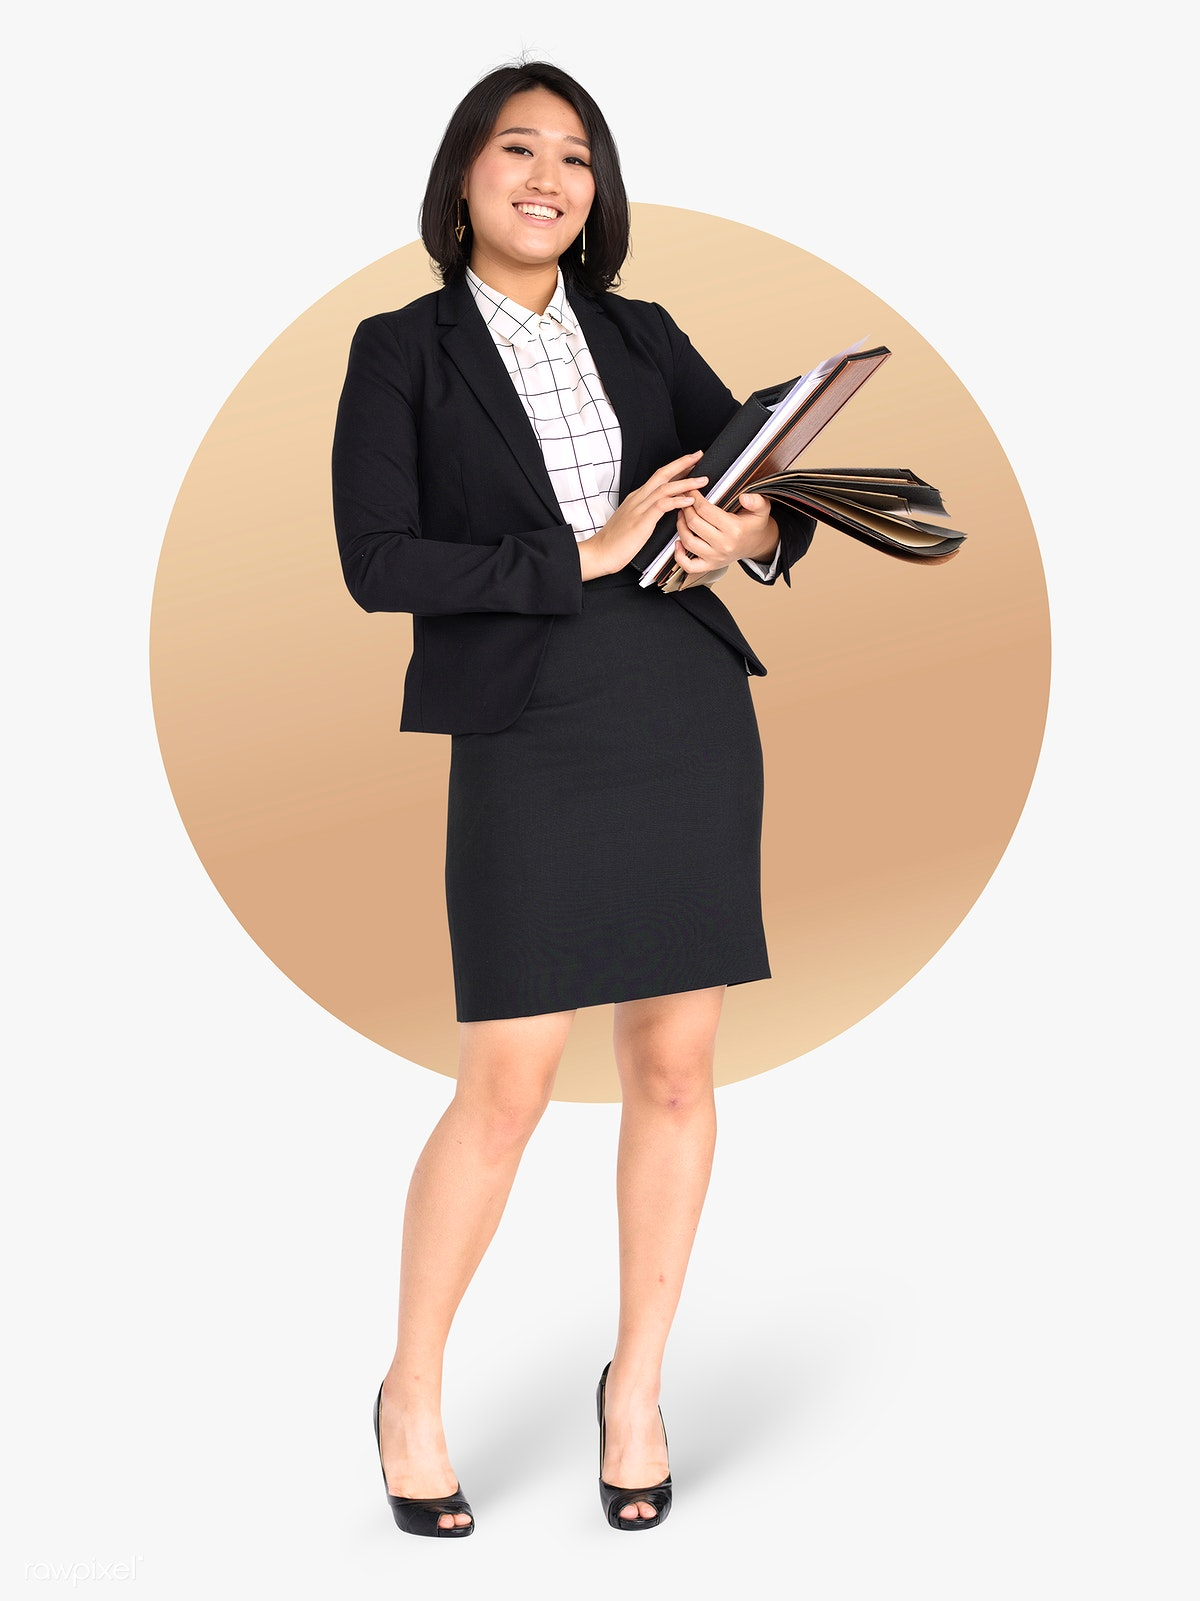 bd80b364 Asian businesswoman standing mockup | Royalty free stock psd mockup ...